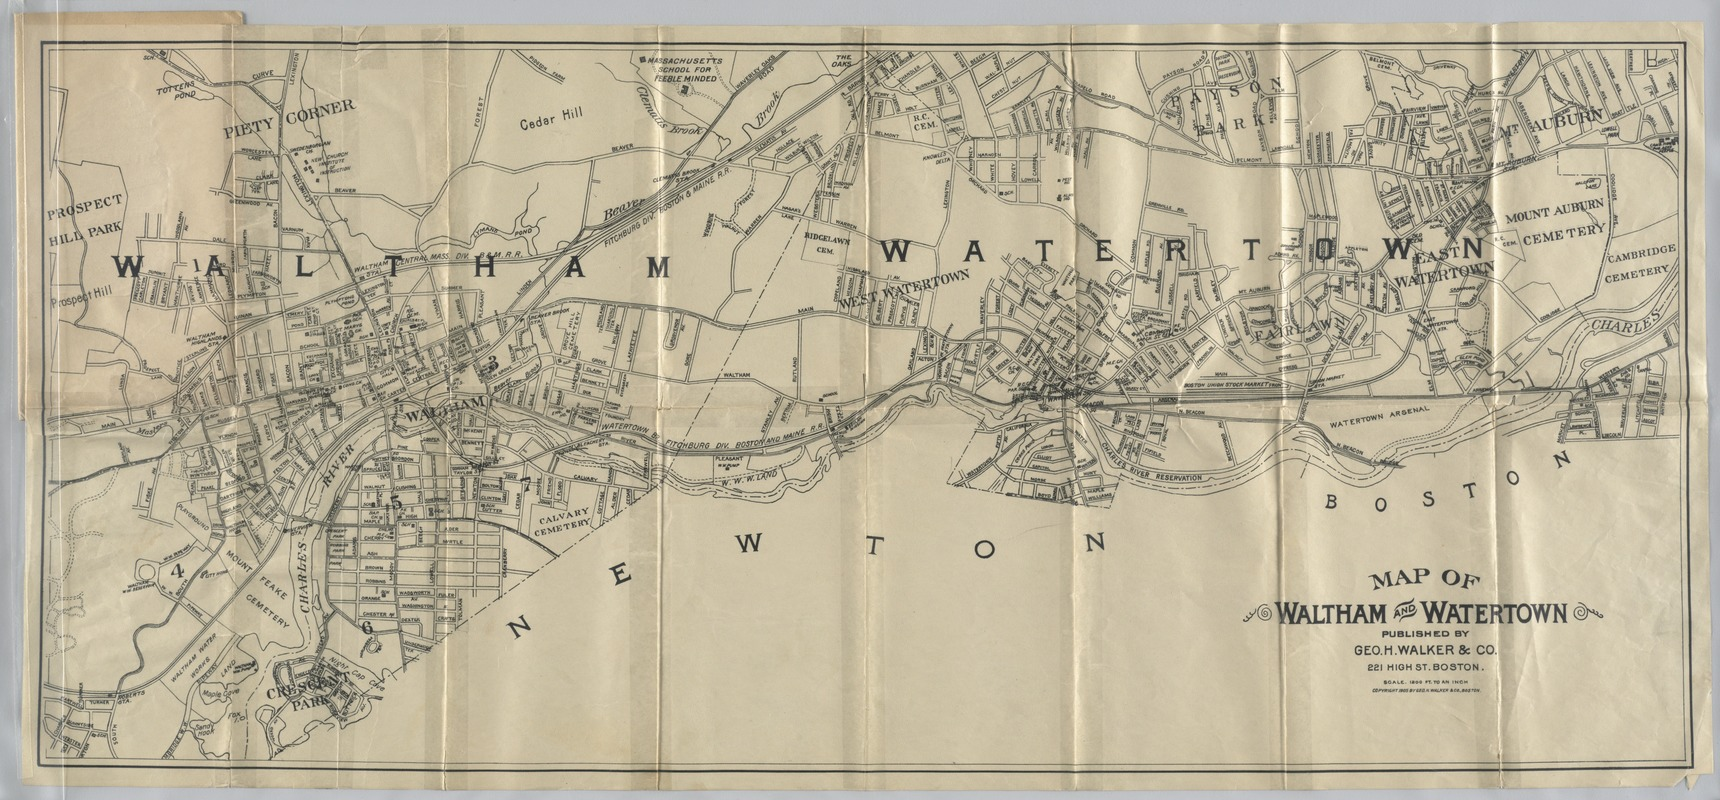 Map of Waltham and Watertown - Digital Commonwealth